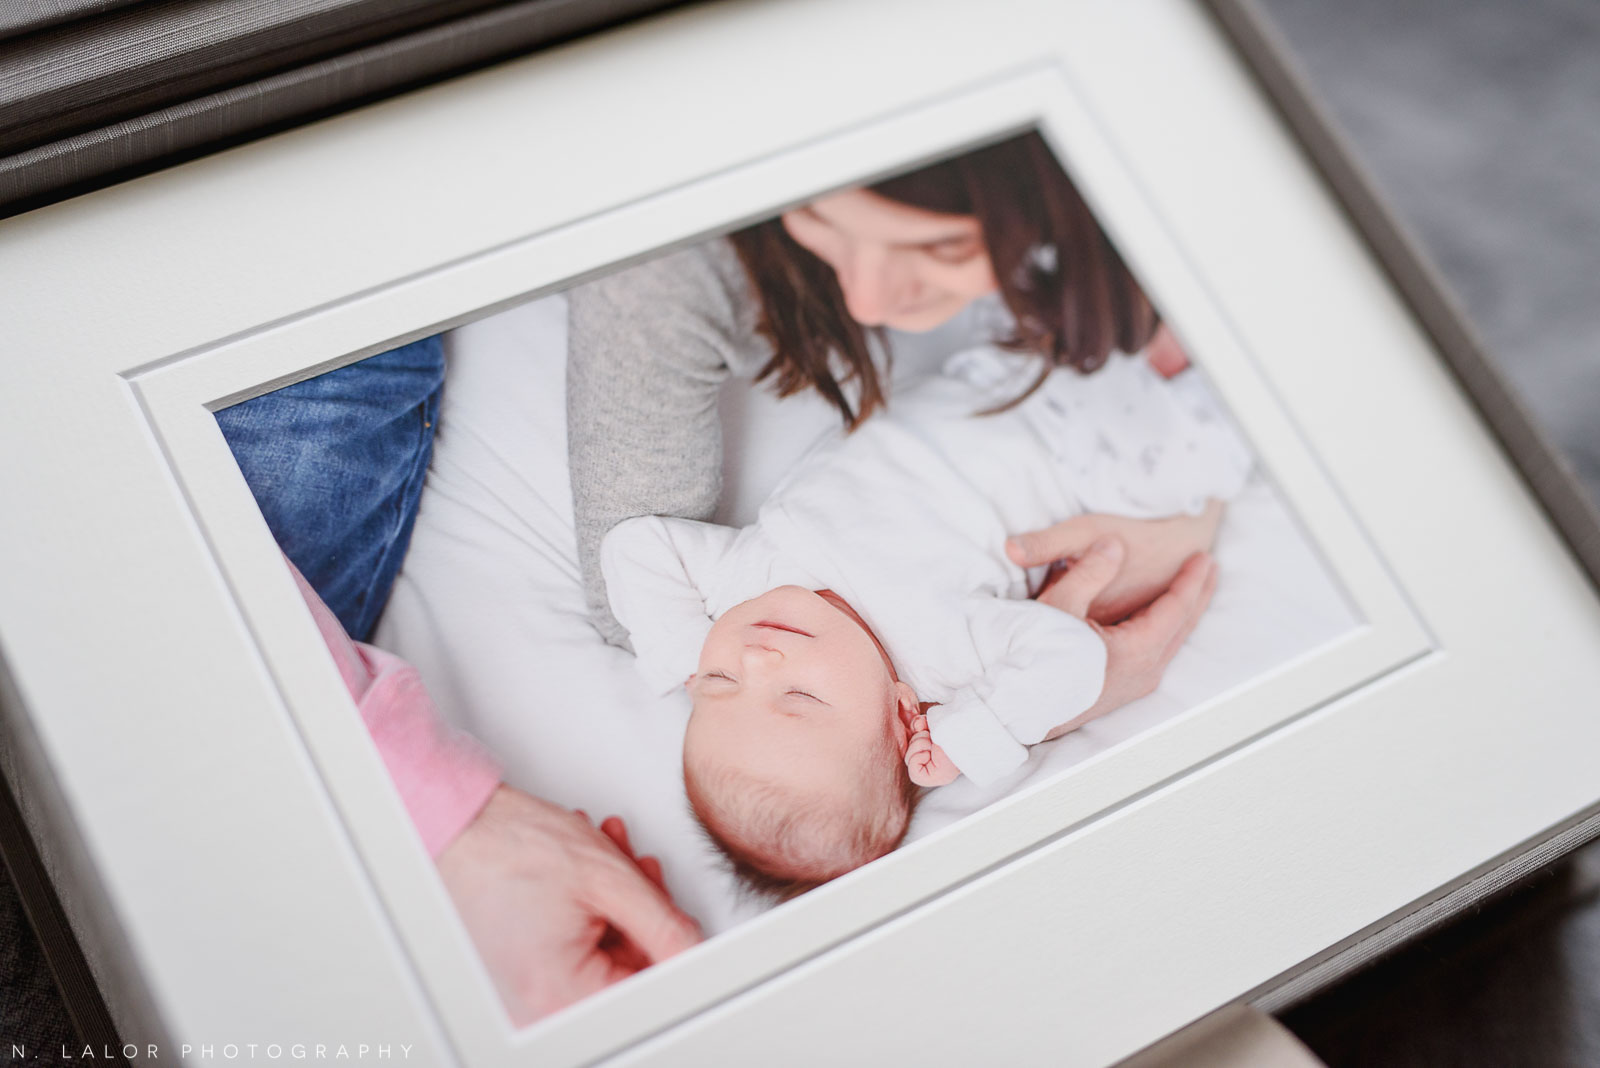 Image of a candid newborn portrait, printed and matted. Studio portrait by N. Lalor Photography in Greenwich, Connecticut.